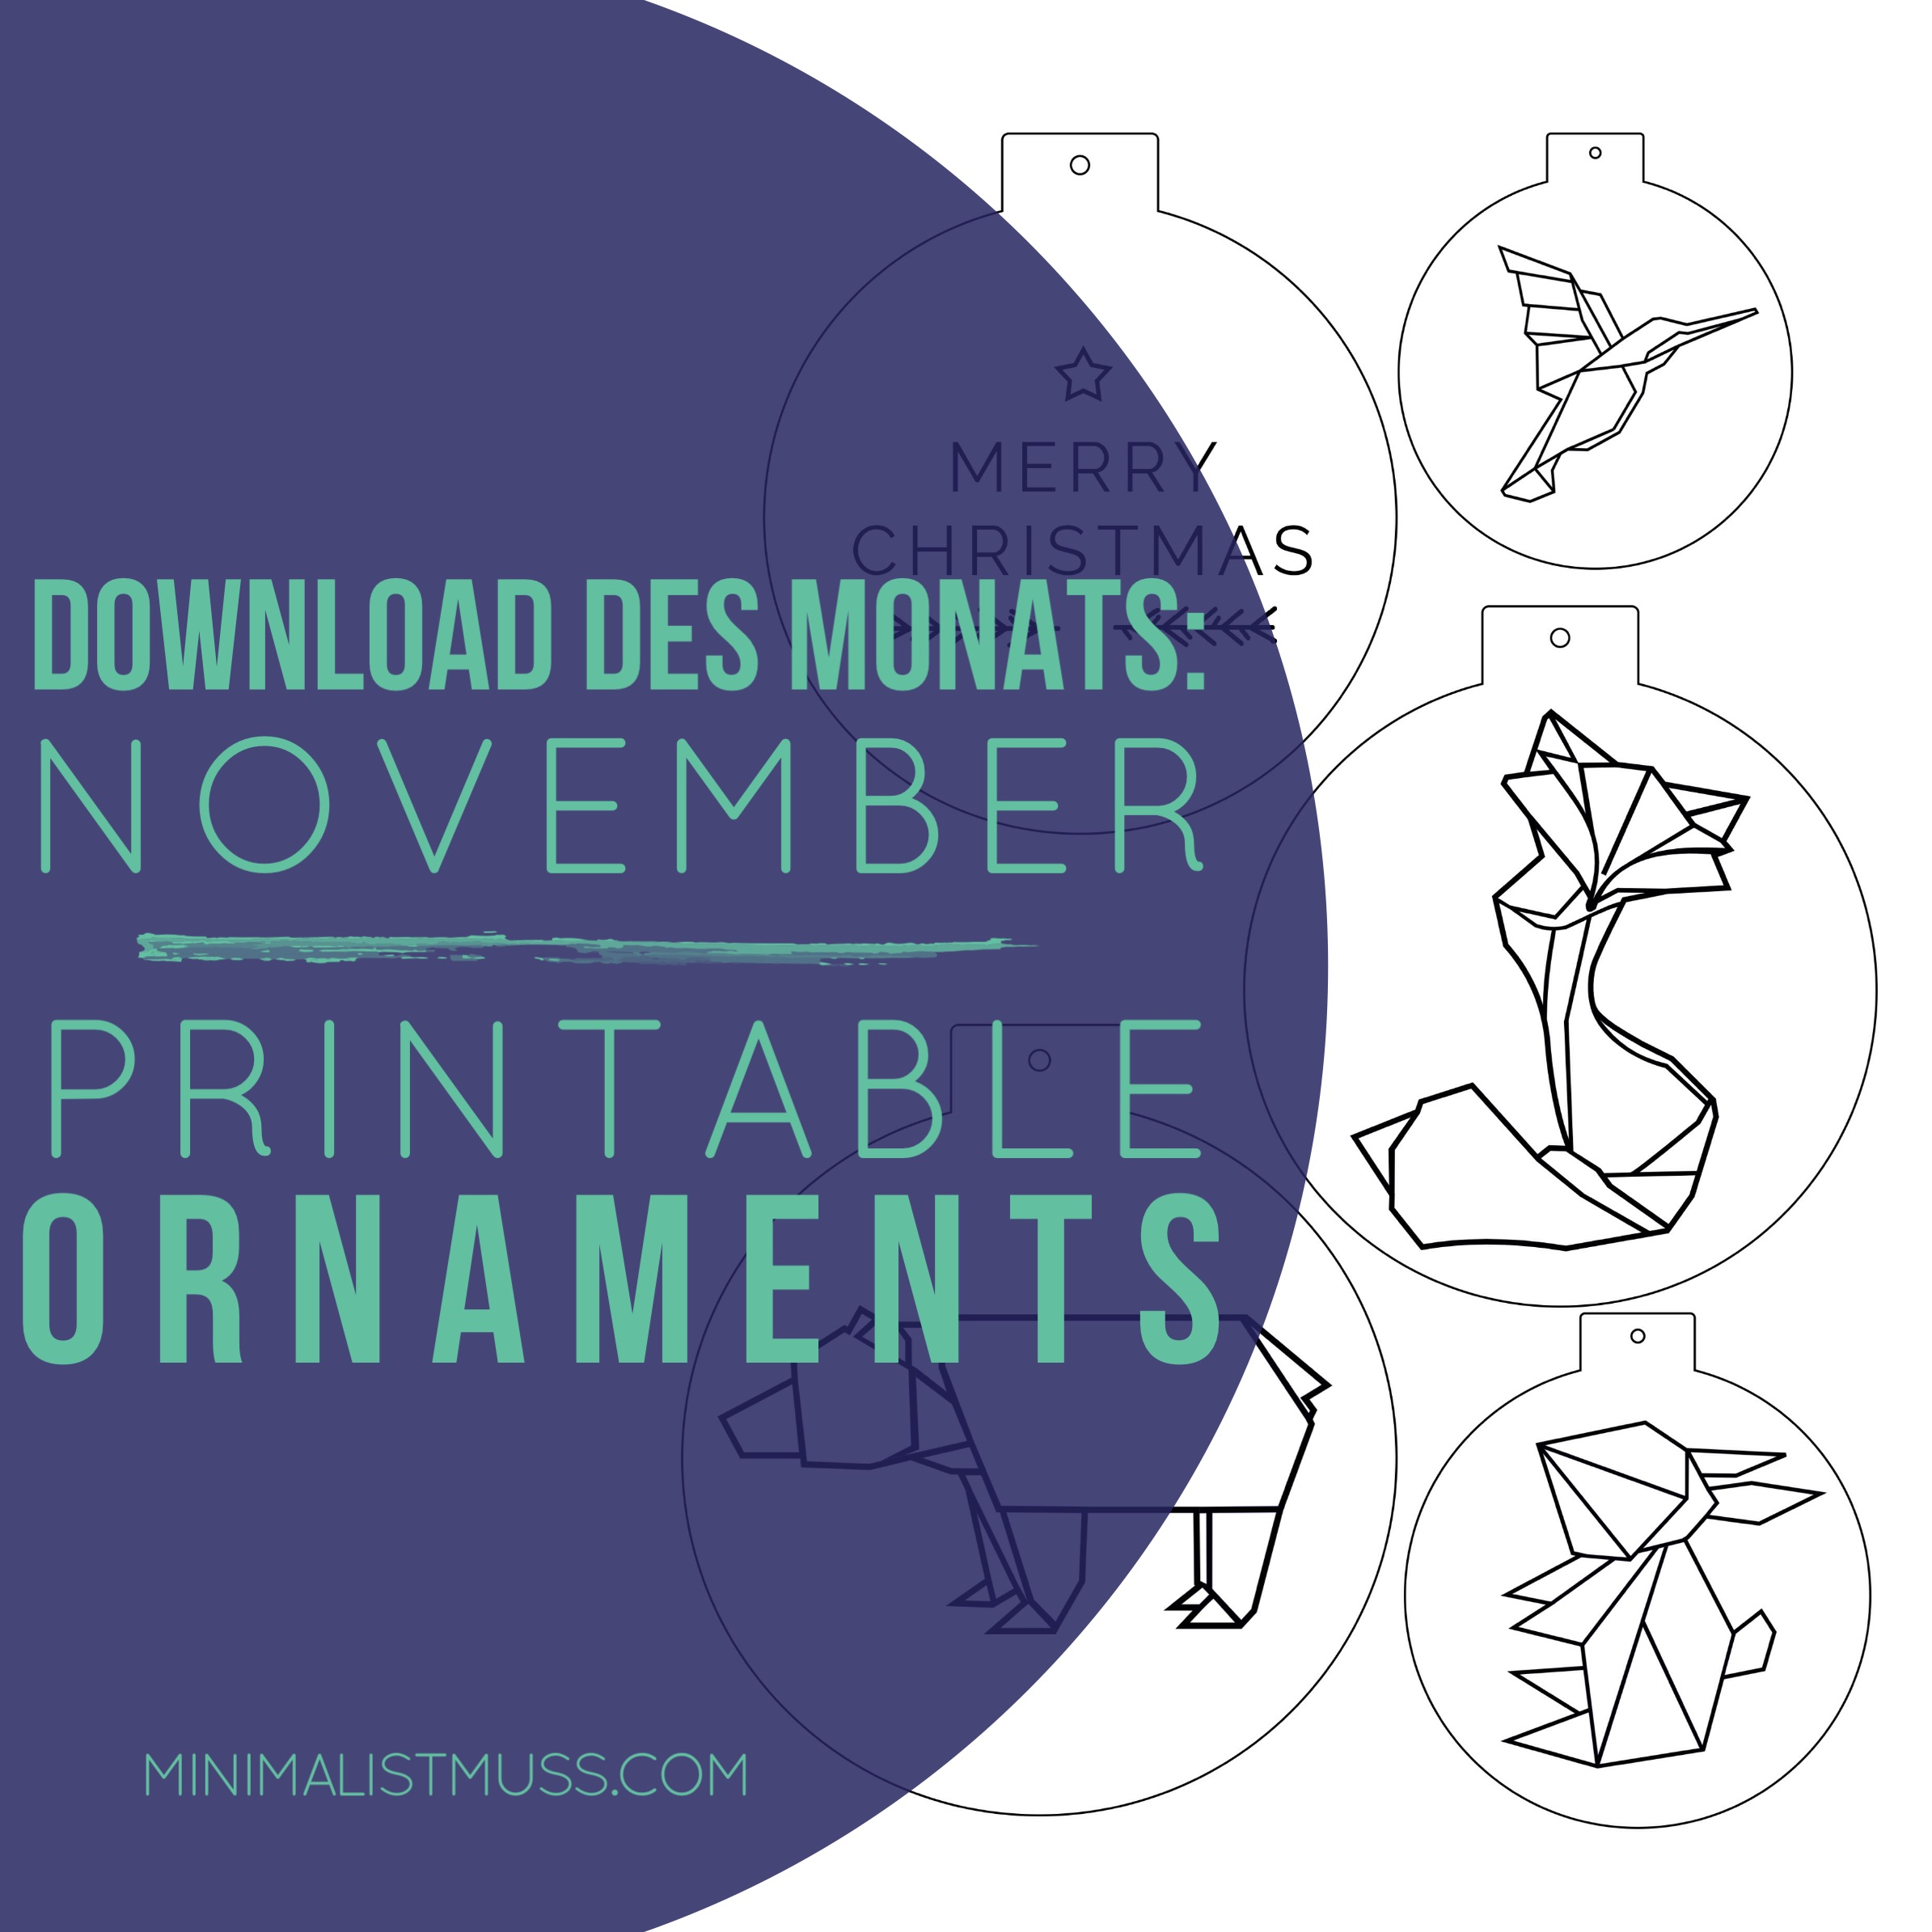 Download des Monats November bei minimalistmuss.com